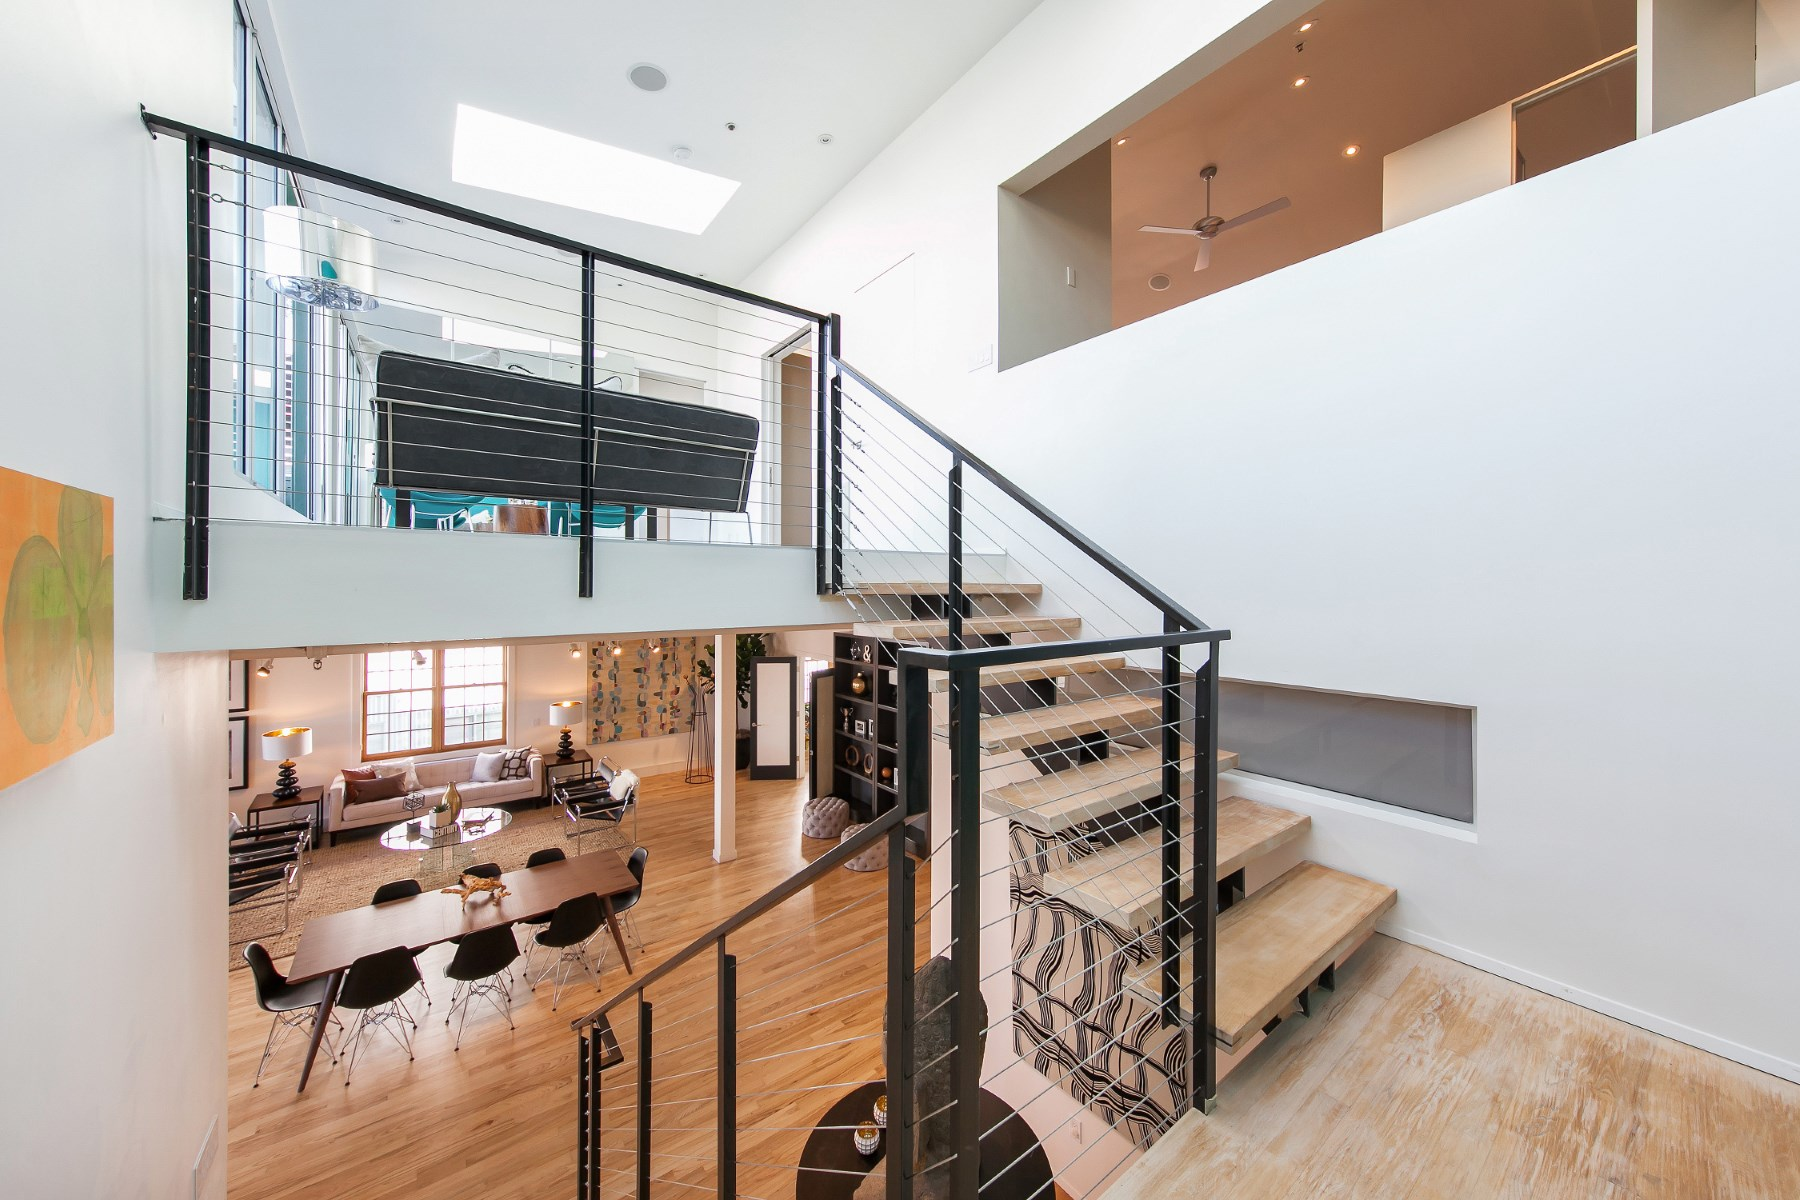 Property For Sale at The Box Factory Loft